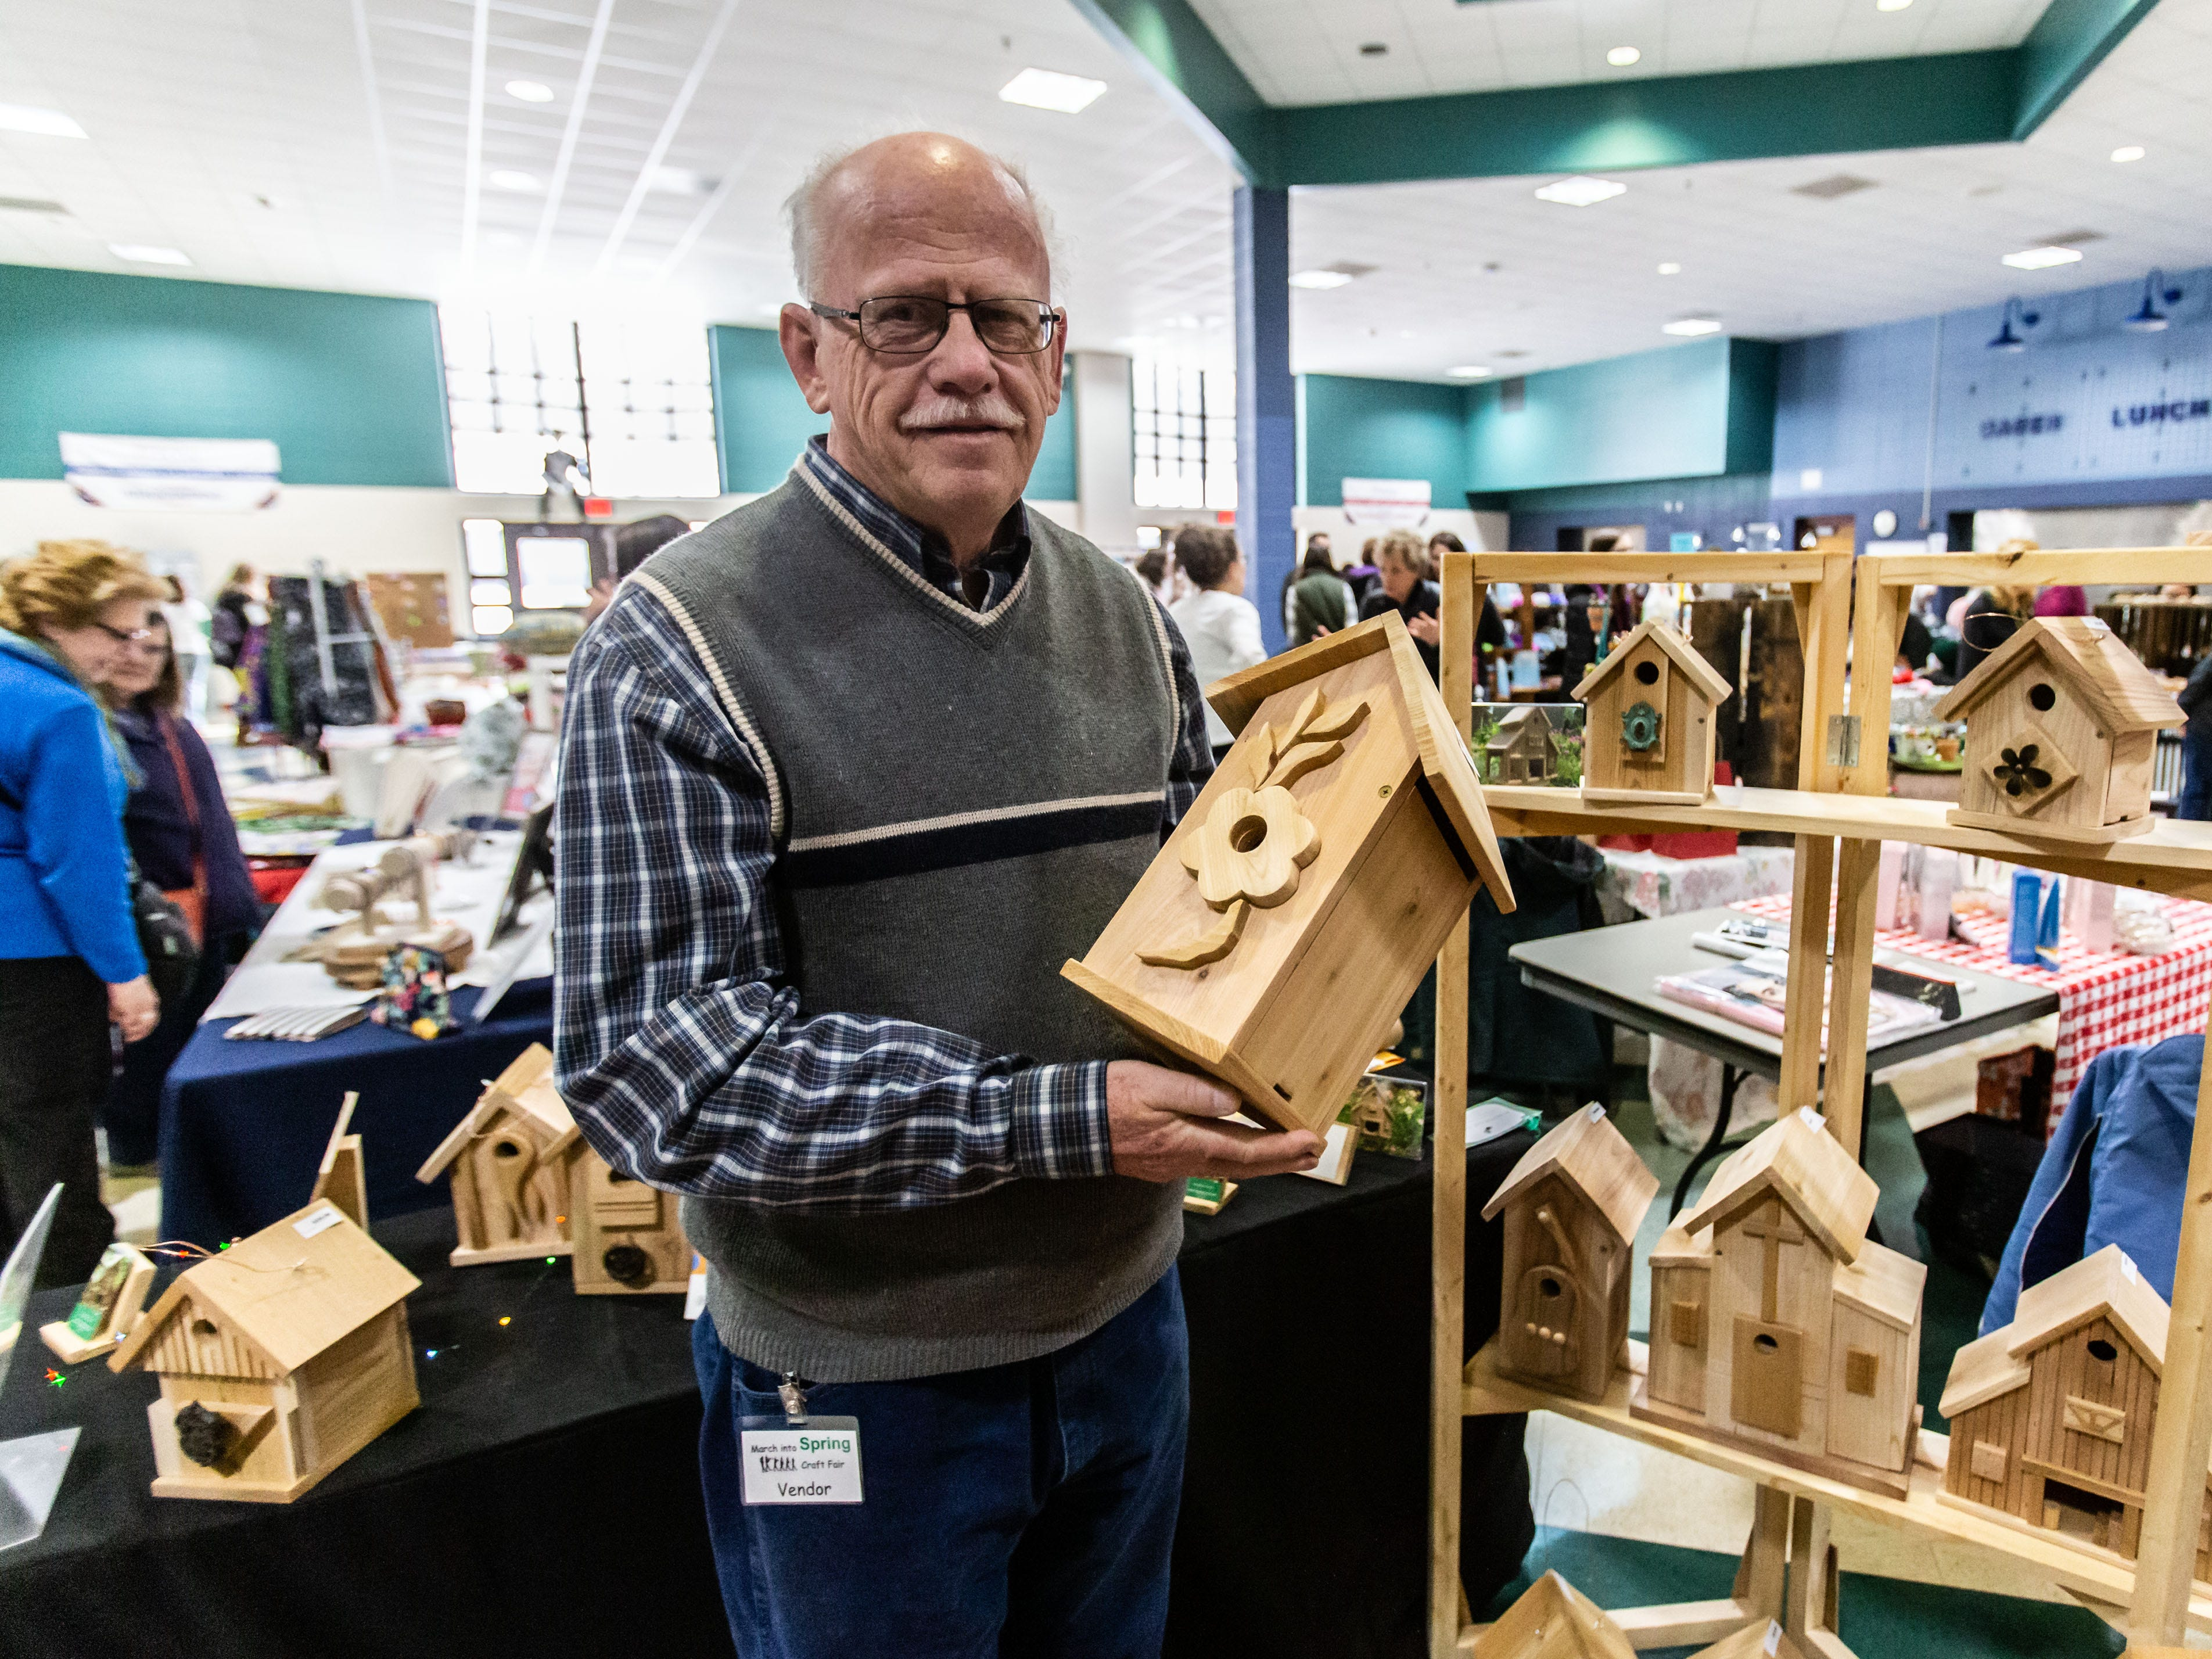 Dennis Otwaska of Racine offers up a variety of hand-made bird houses during the 3rd annual March into Spring Craft Fair at Franklin High School on Saturday, March 2, 2019. The event is a fundraiser for the Franklin High School Marching Band.